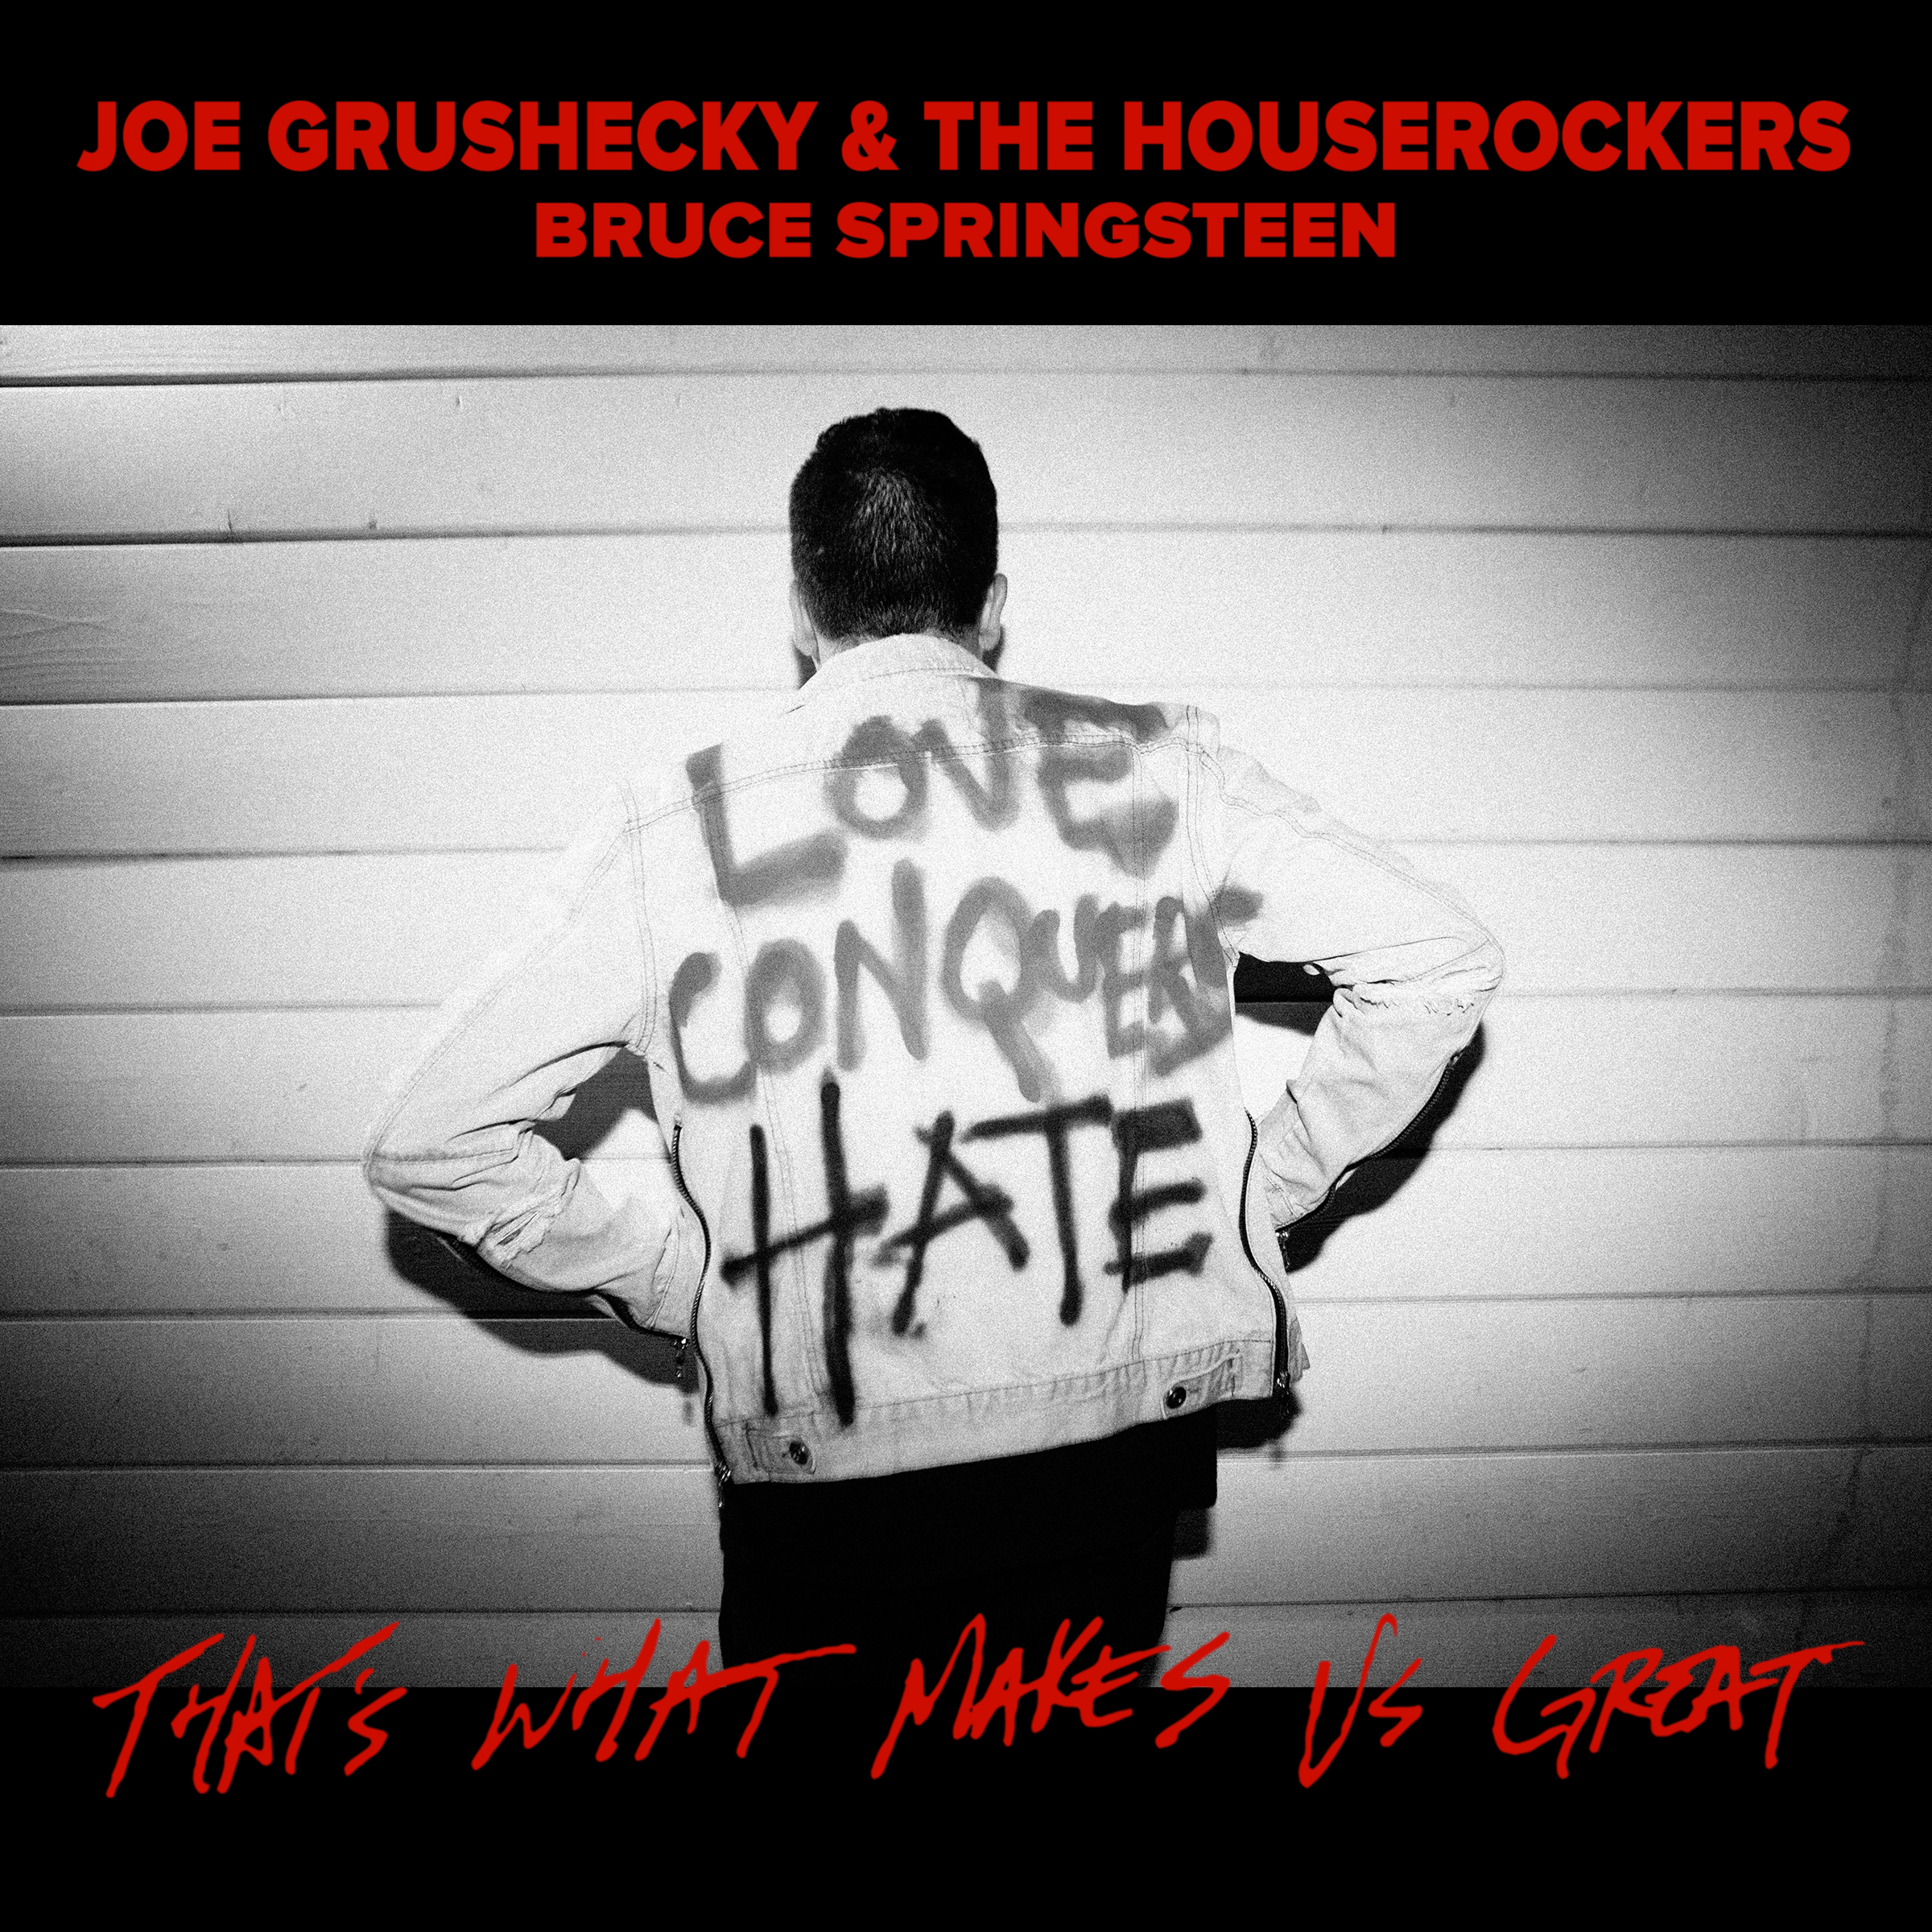 Bruce Springsteen and Joe Grushecky release new protest song